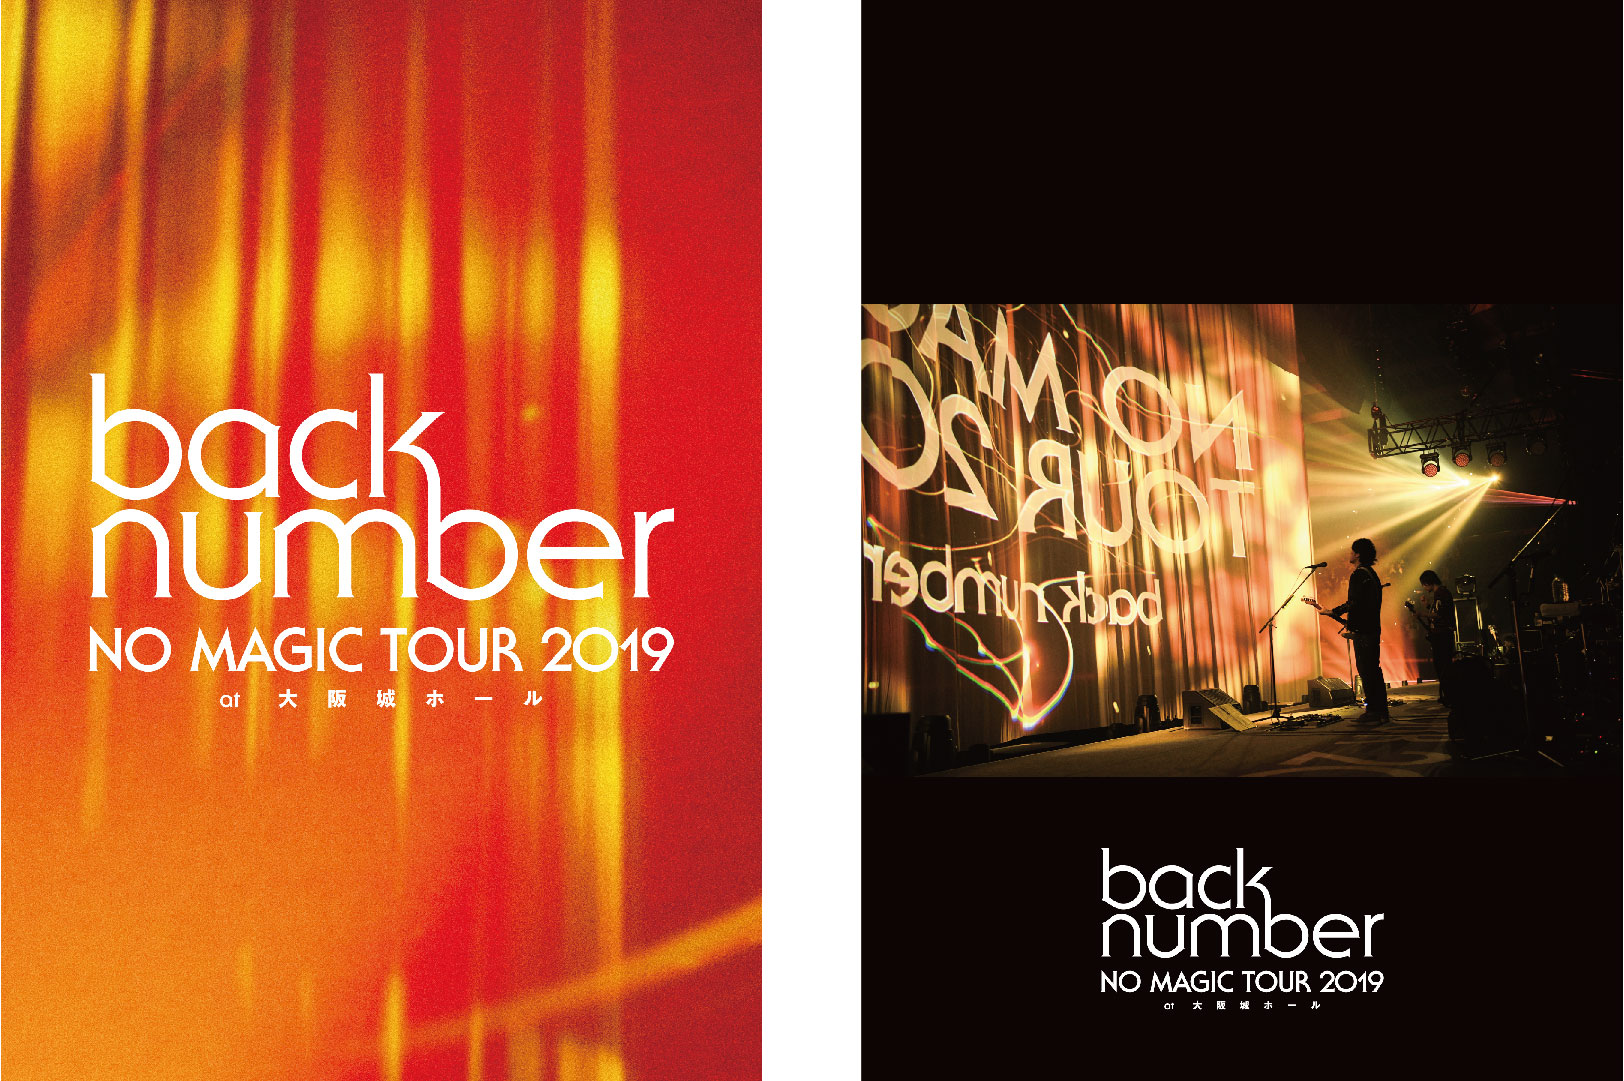 back number ライブBlu-ray&DVD発売記念!「NO MAGIC TOUR 2019 at 大阪城ホール」プレミアム上映会開催!